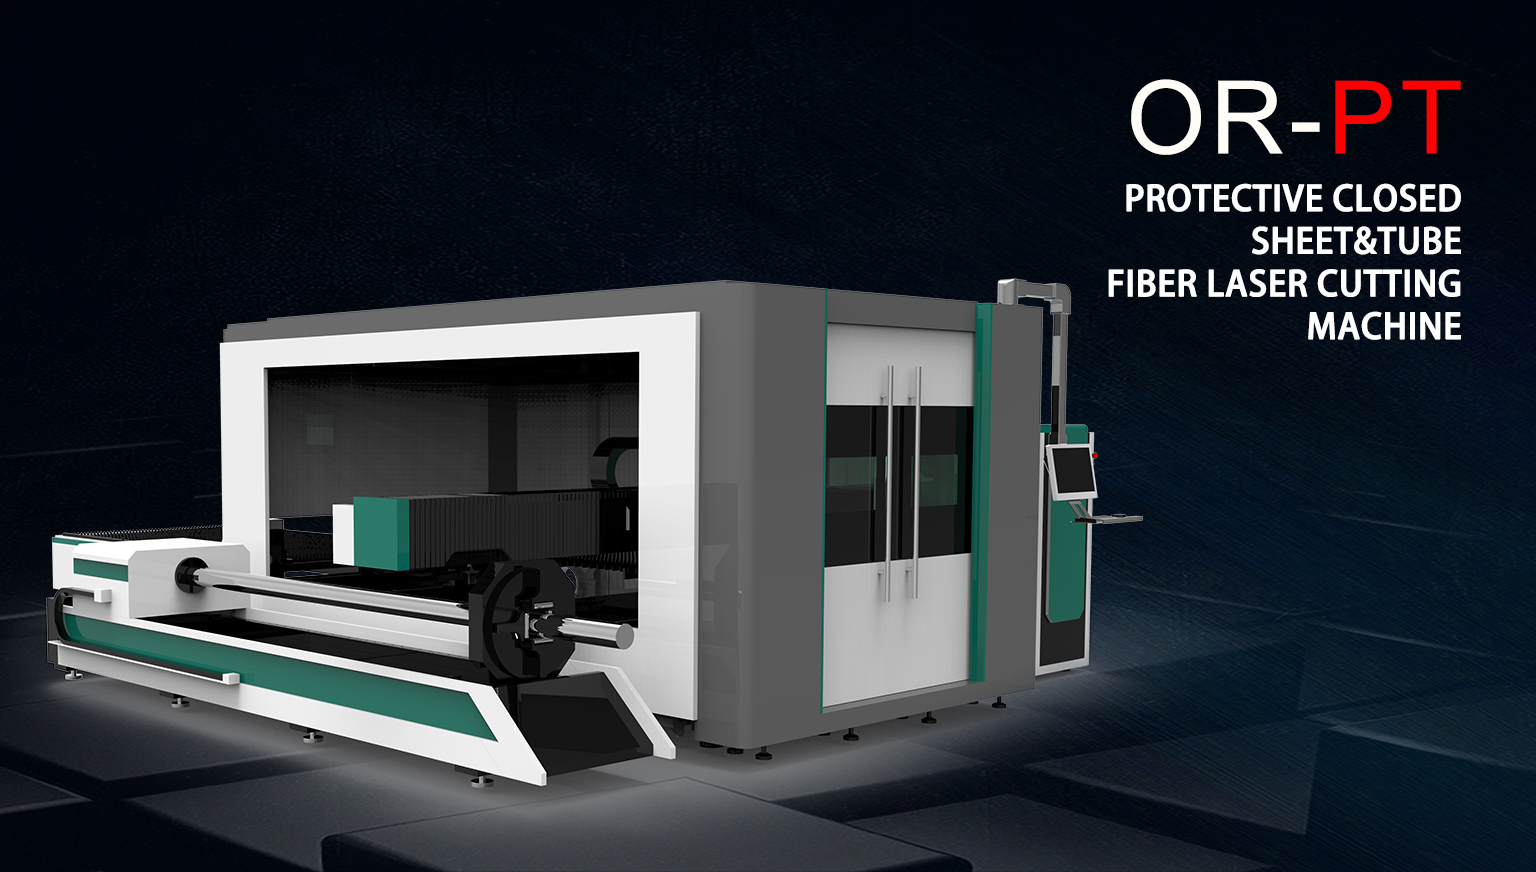 Protective Closed Sheet&Tube Fiber Laser Cutting Machine OR-PT